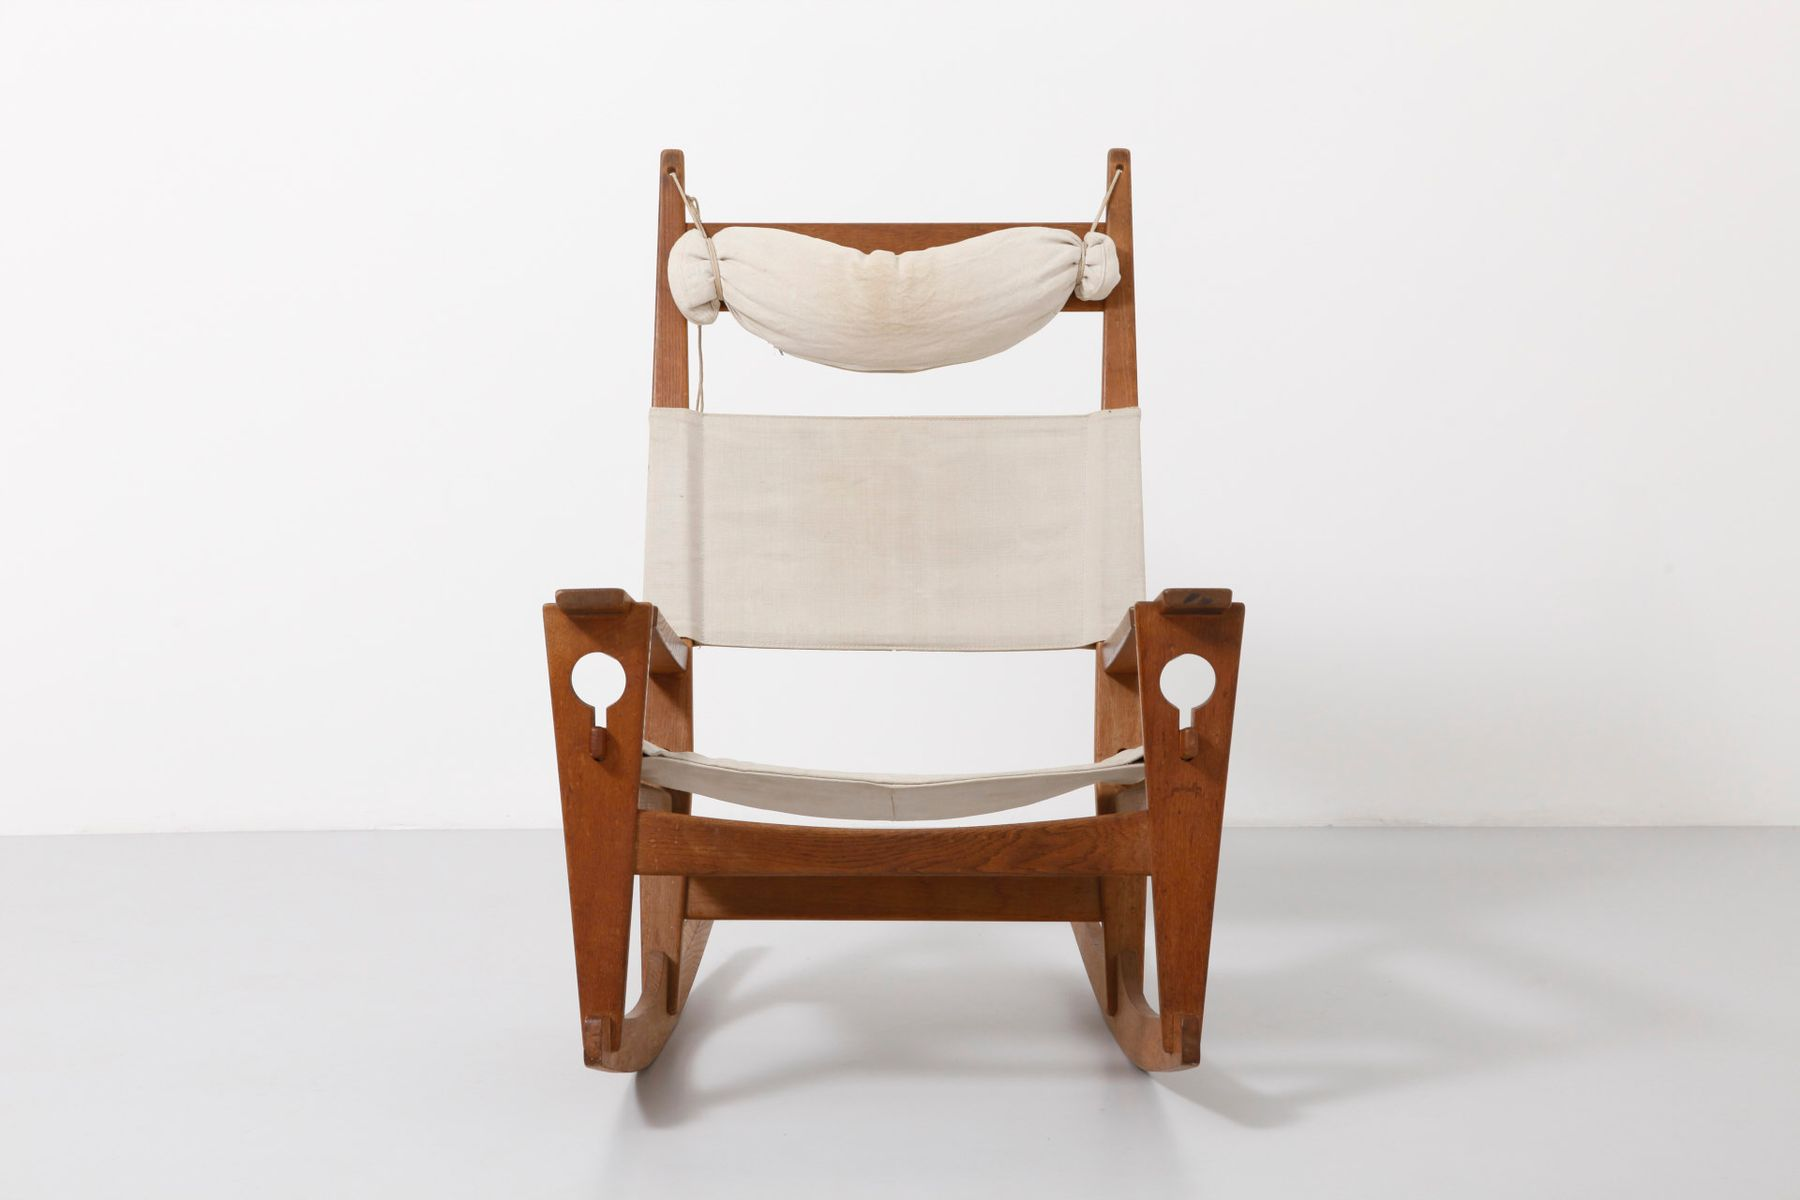 Keyhold GE673 Rocking Chair By Hans J. Wegner For Getama For Sale At . Full resolution‎  portraiture, nominally Width 1800 Height 1200 pixels, portraiture with #482B17.